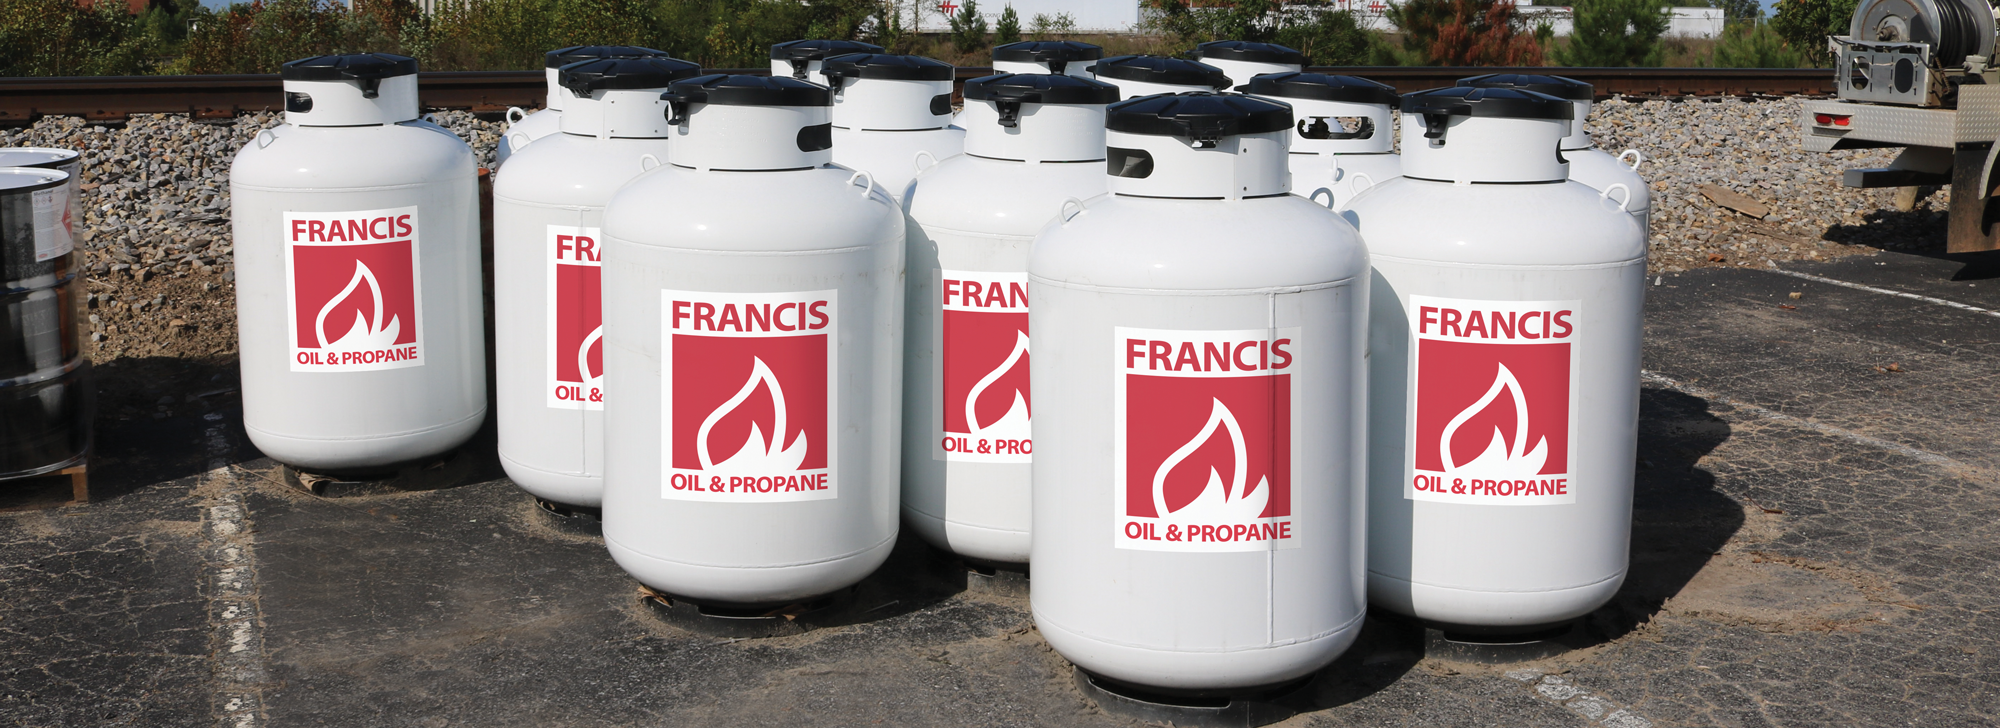 Francis-Oil-tank.png